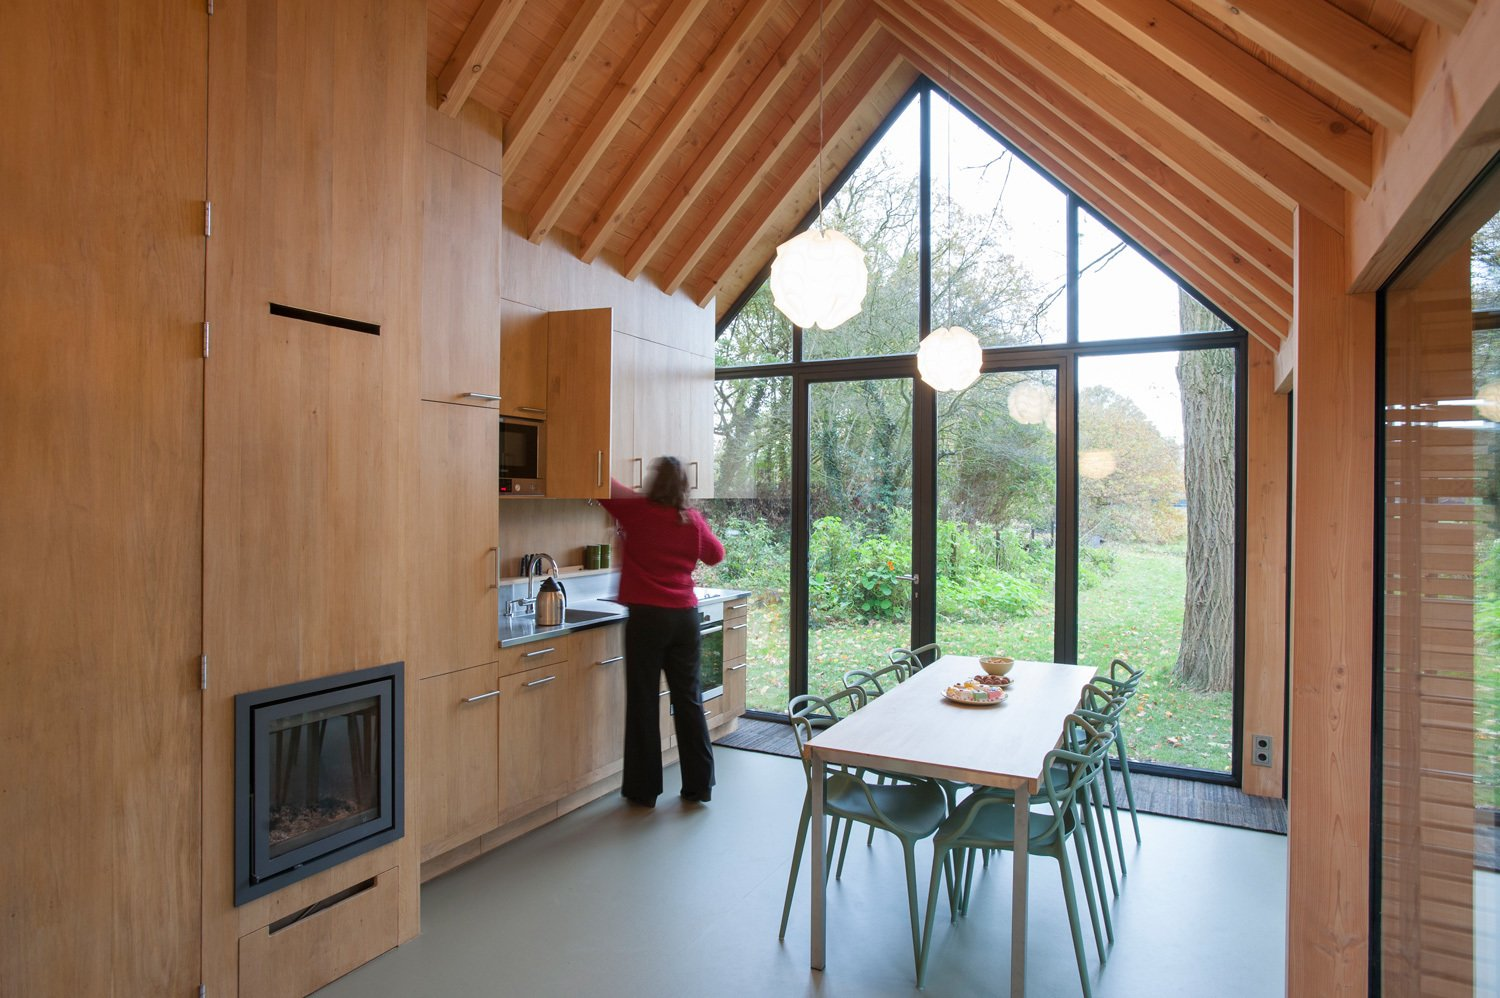 Kitchen and Wood Cabinet Fine wood craftsmanship defines the dwelling's interior, where all the facilities—from the kitchen cabinets to the fireplace to the bathroom—are integrated into a single oak wall, handmade by van Norel. He also made the dining table, which is paired with Philippe Starck master chairs—the only ready-made items in the space other than fixtures and appliances.  Utrecht Cabin by Laura C. Mallonee from Light-Filled Dining Rooms